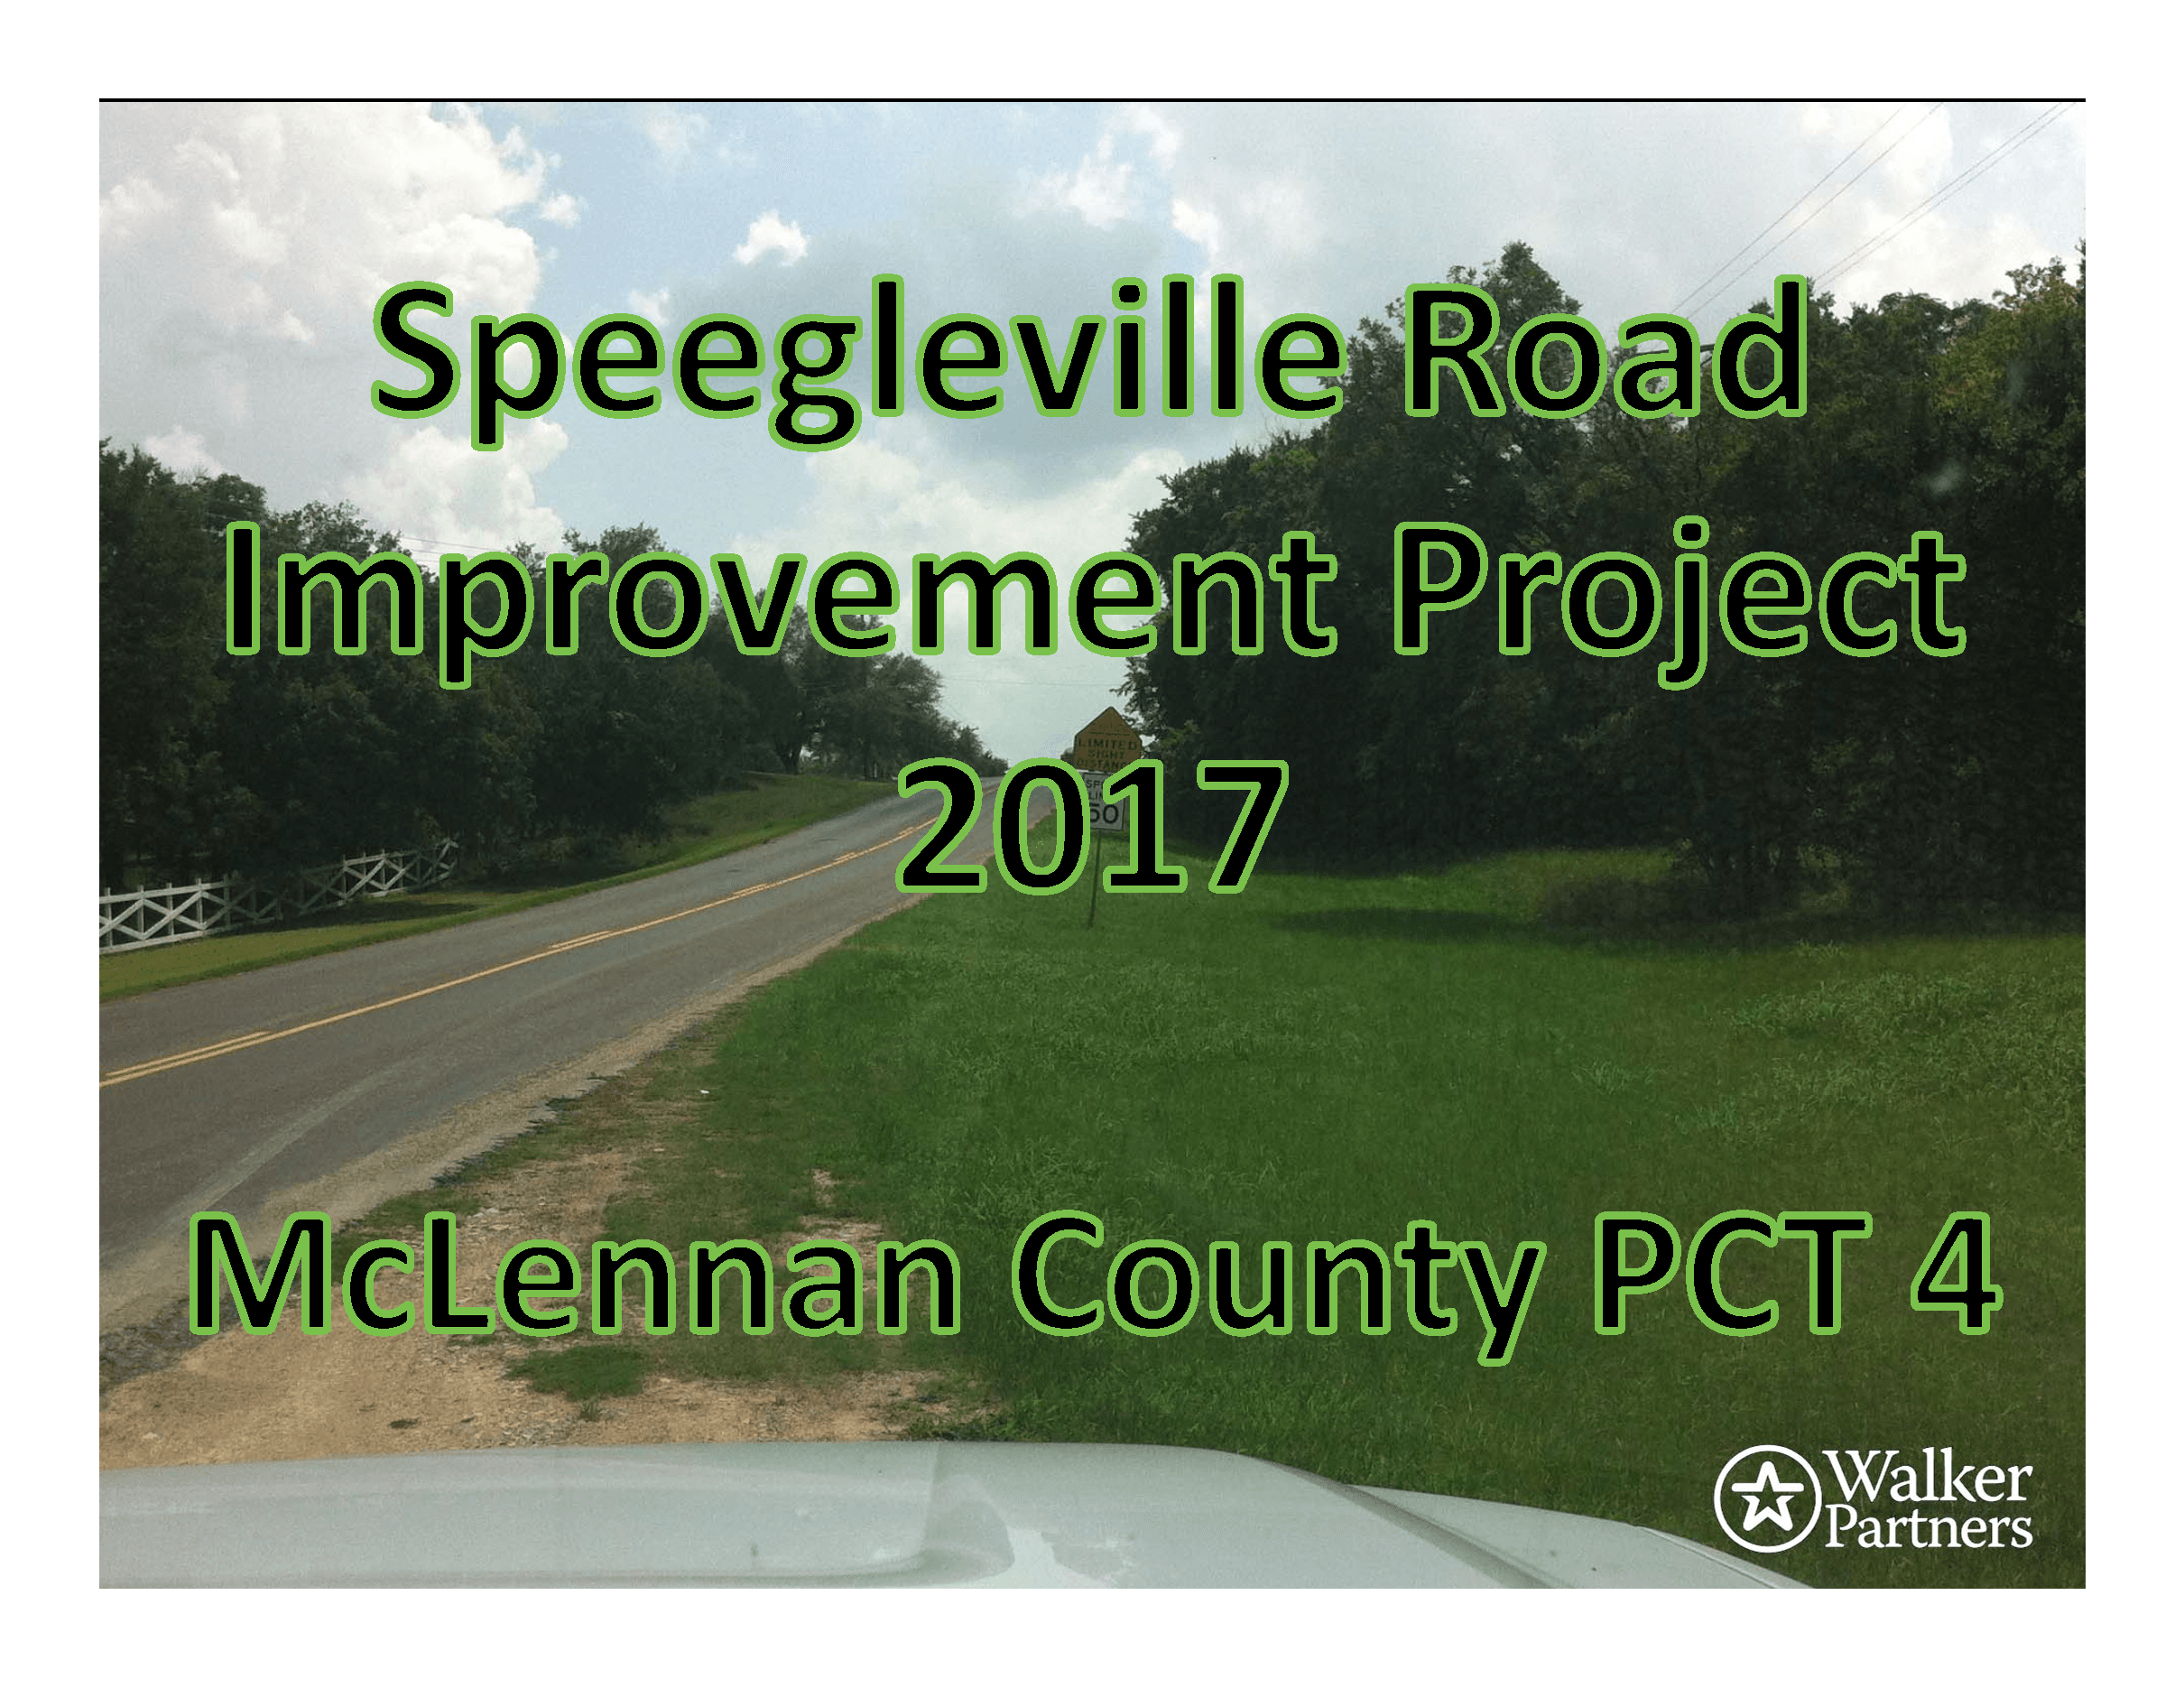 Speegleville Road Improvement Project Image